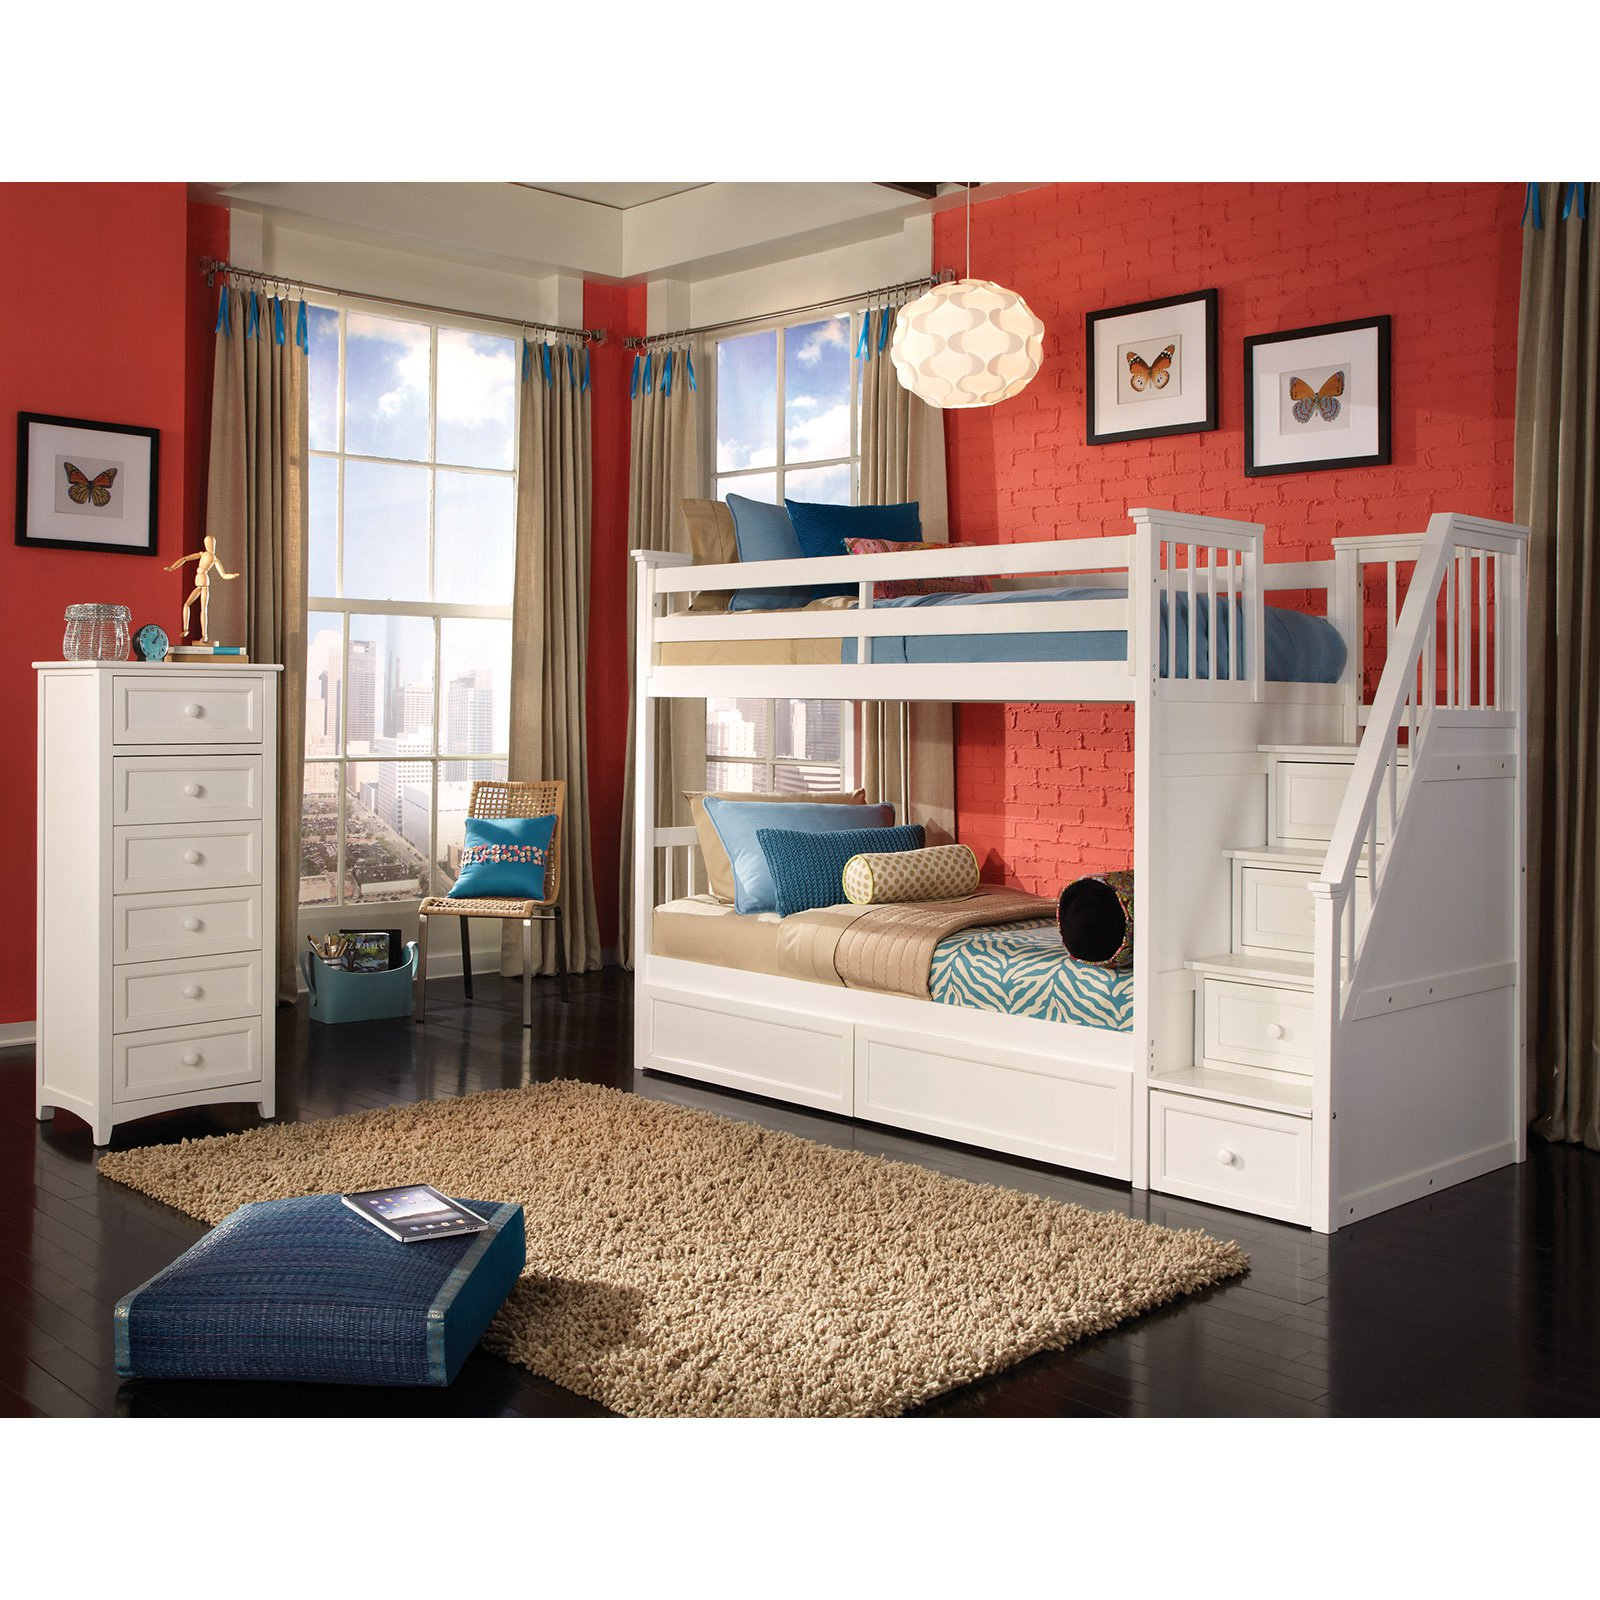 chic wood Bunk Beds With Stairs in white on wooden floor matched with orange wall with picture plus pretty pendant for teen bedroom decor ideas